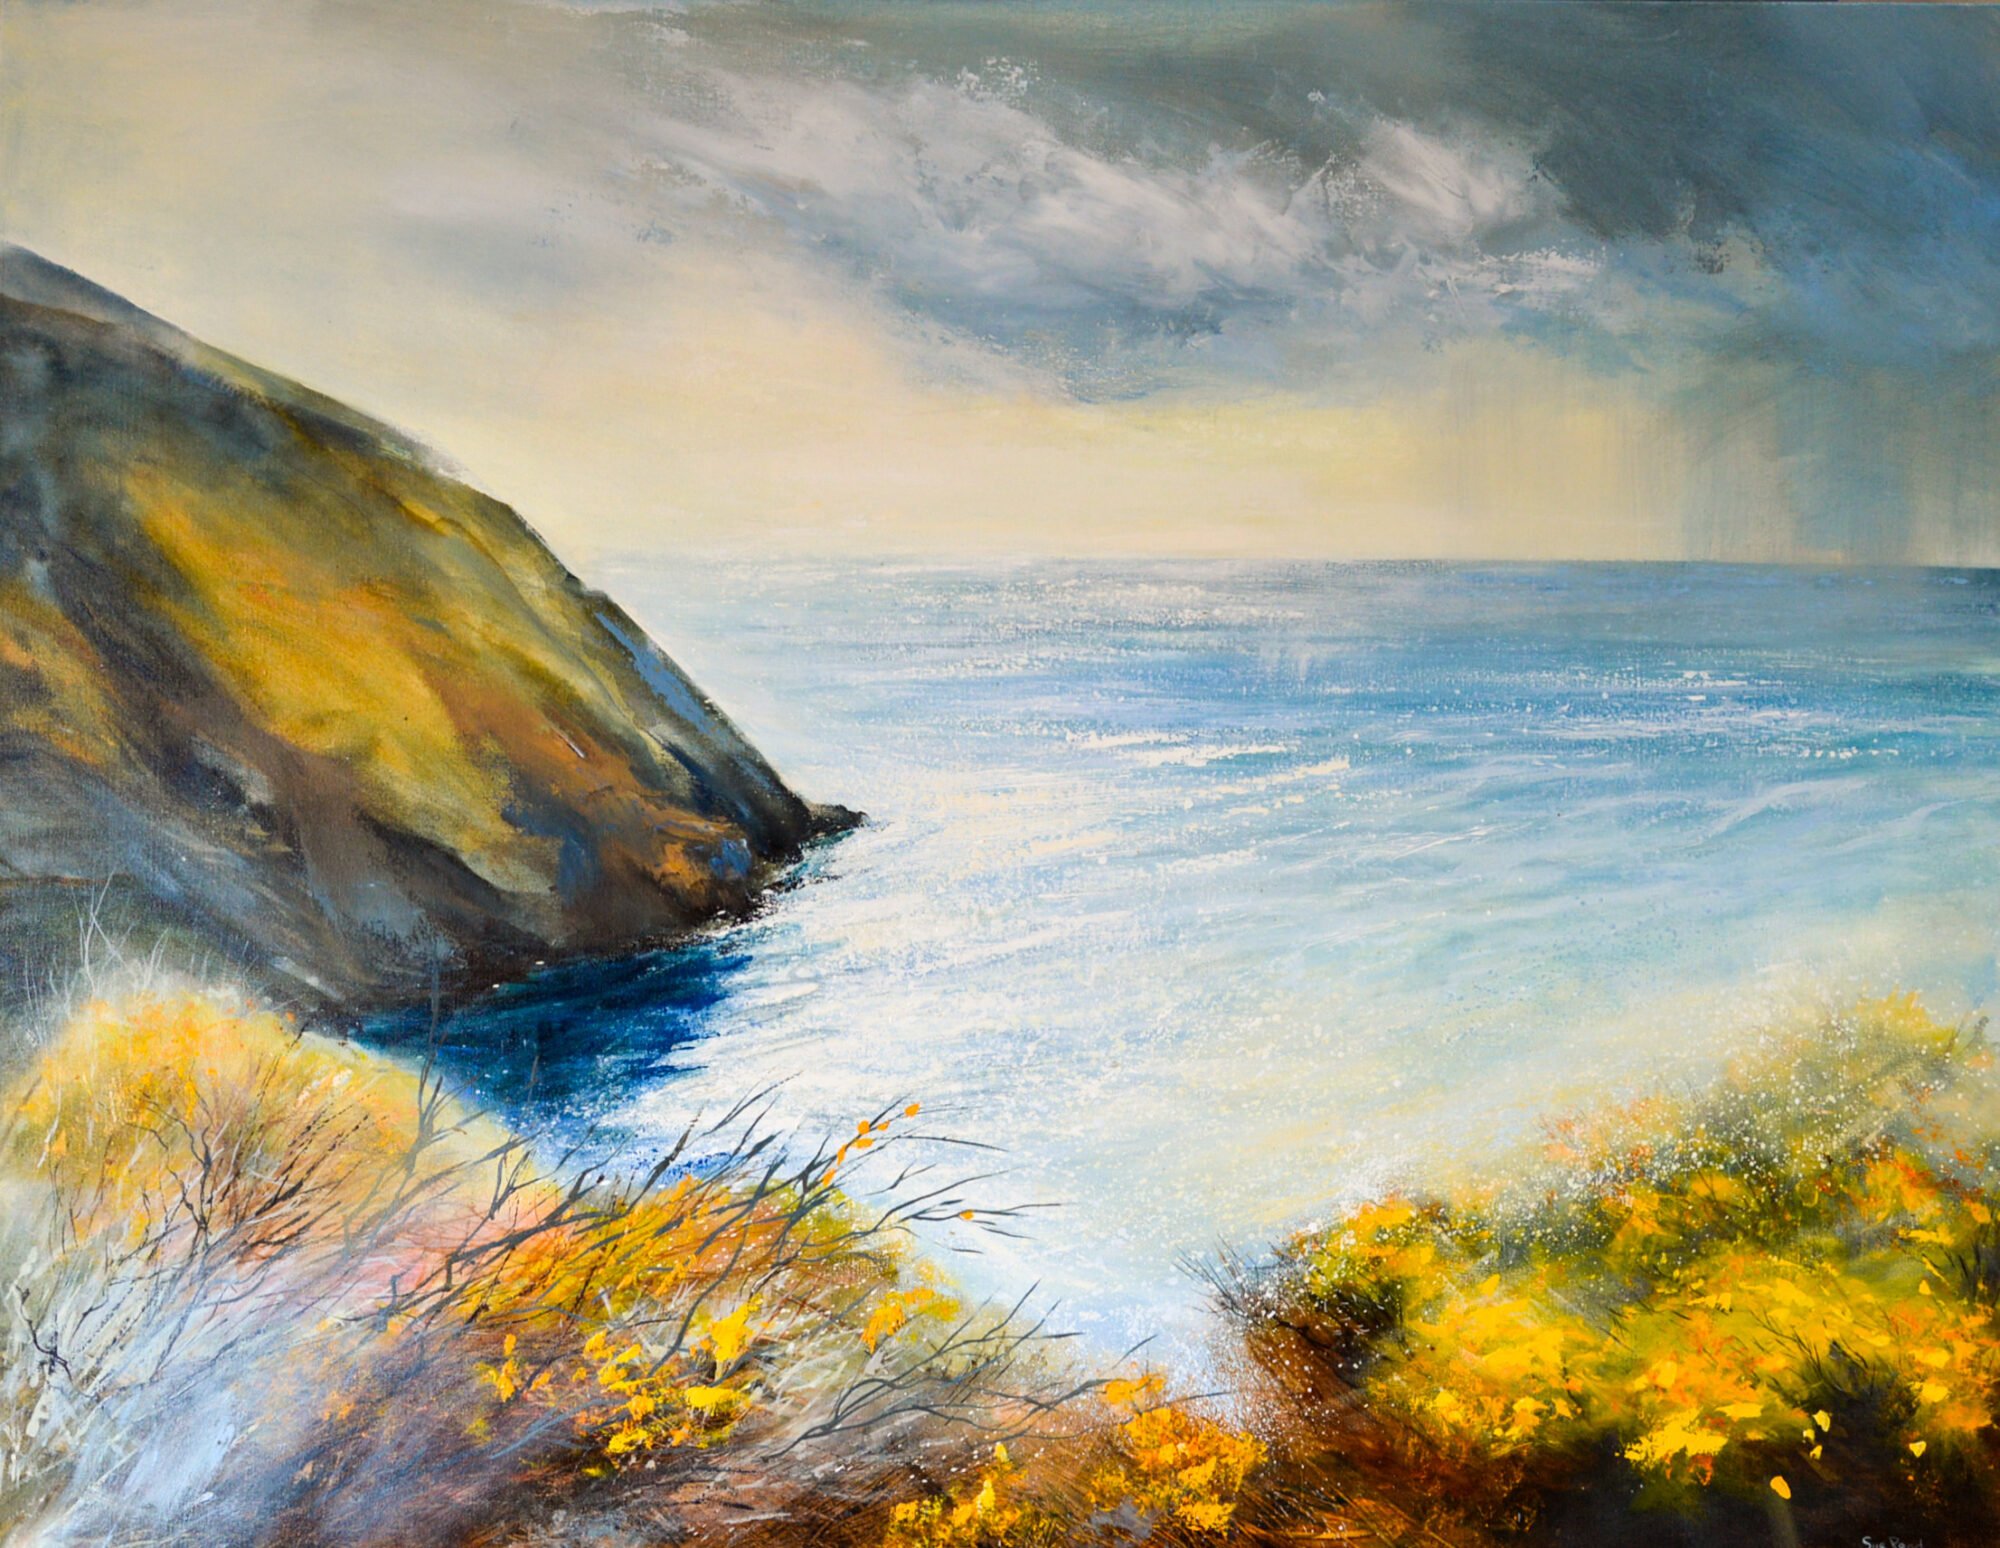 Cornwall art, cornish artist, cornish coast, seascape painting, coastal art cornwall